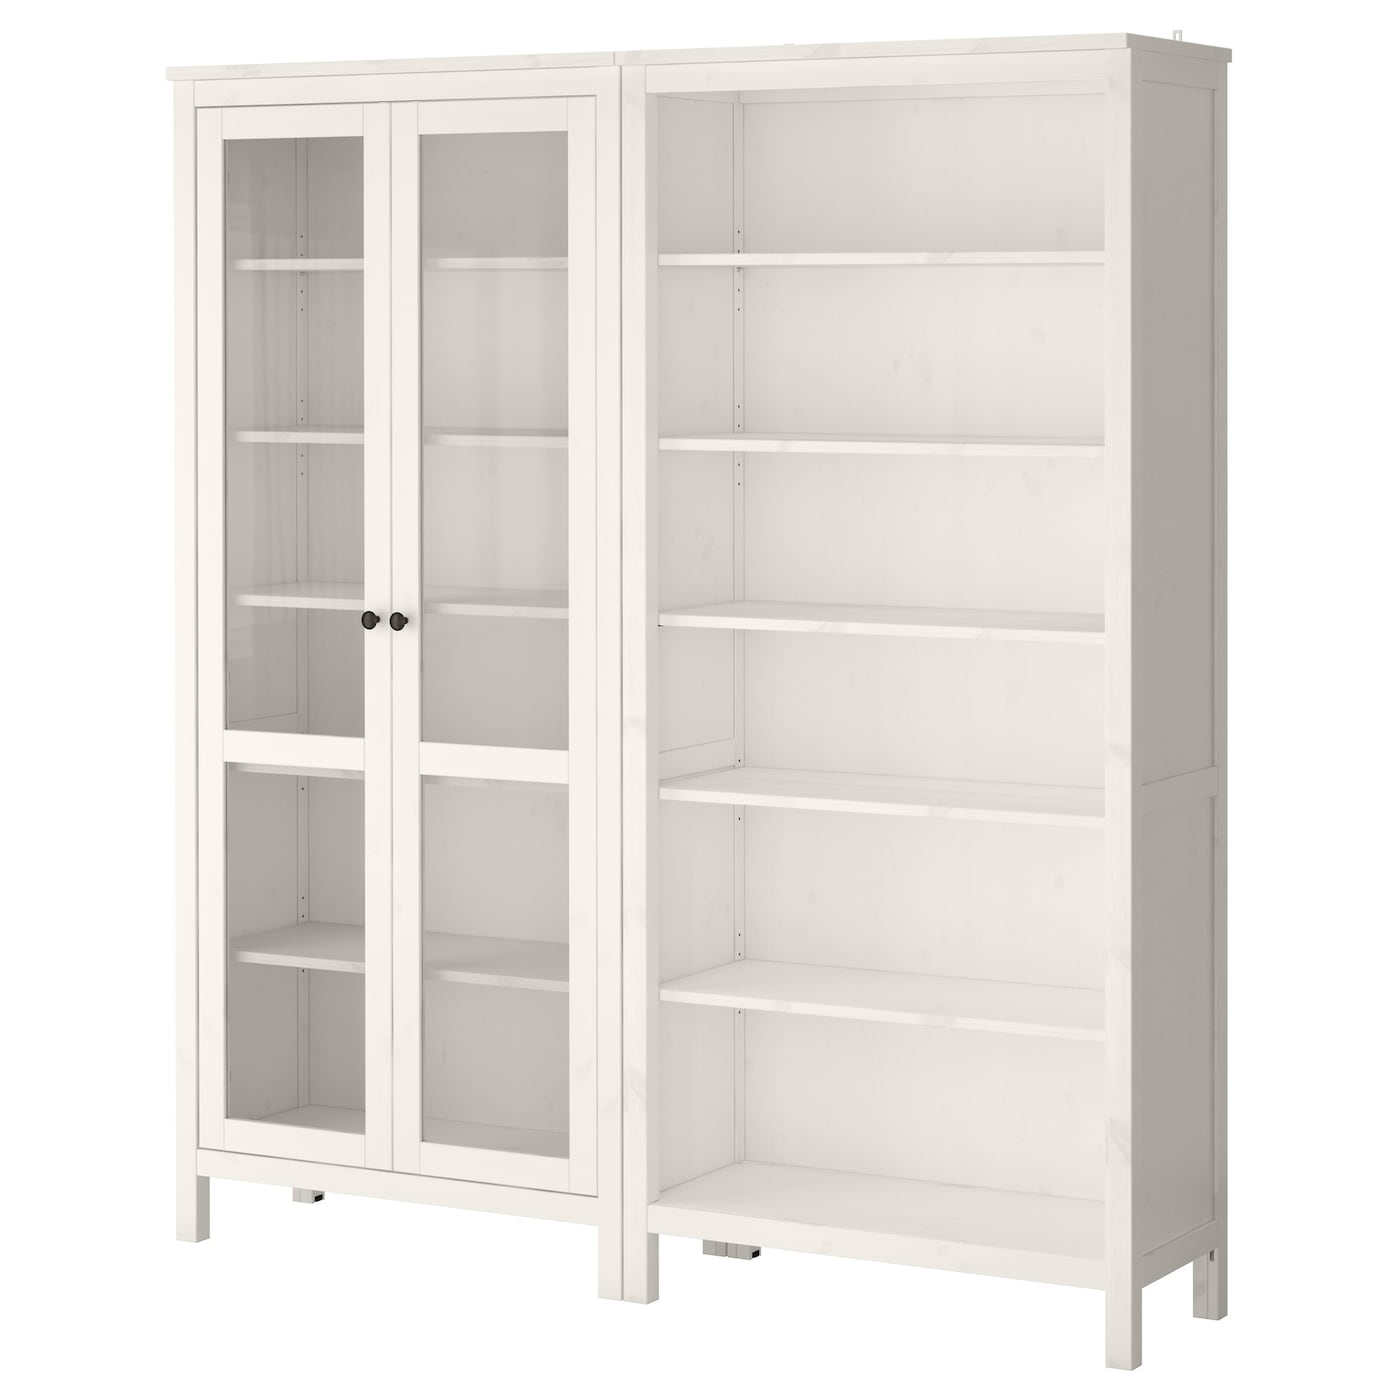 IKEA HEMNES storage combination w glass doors Solid wood has a natural feel.